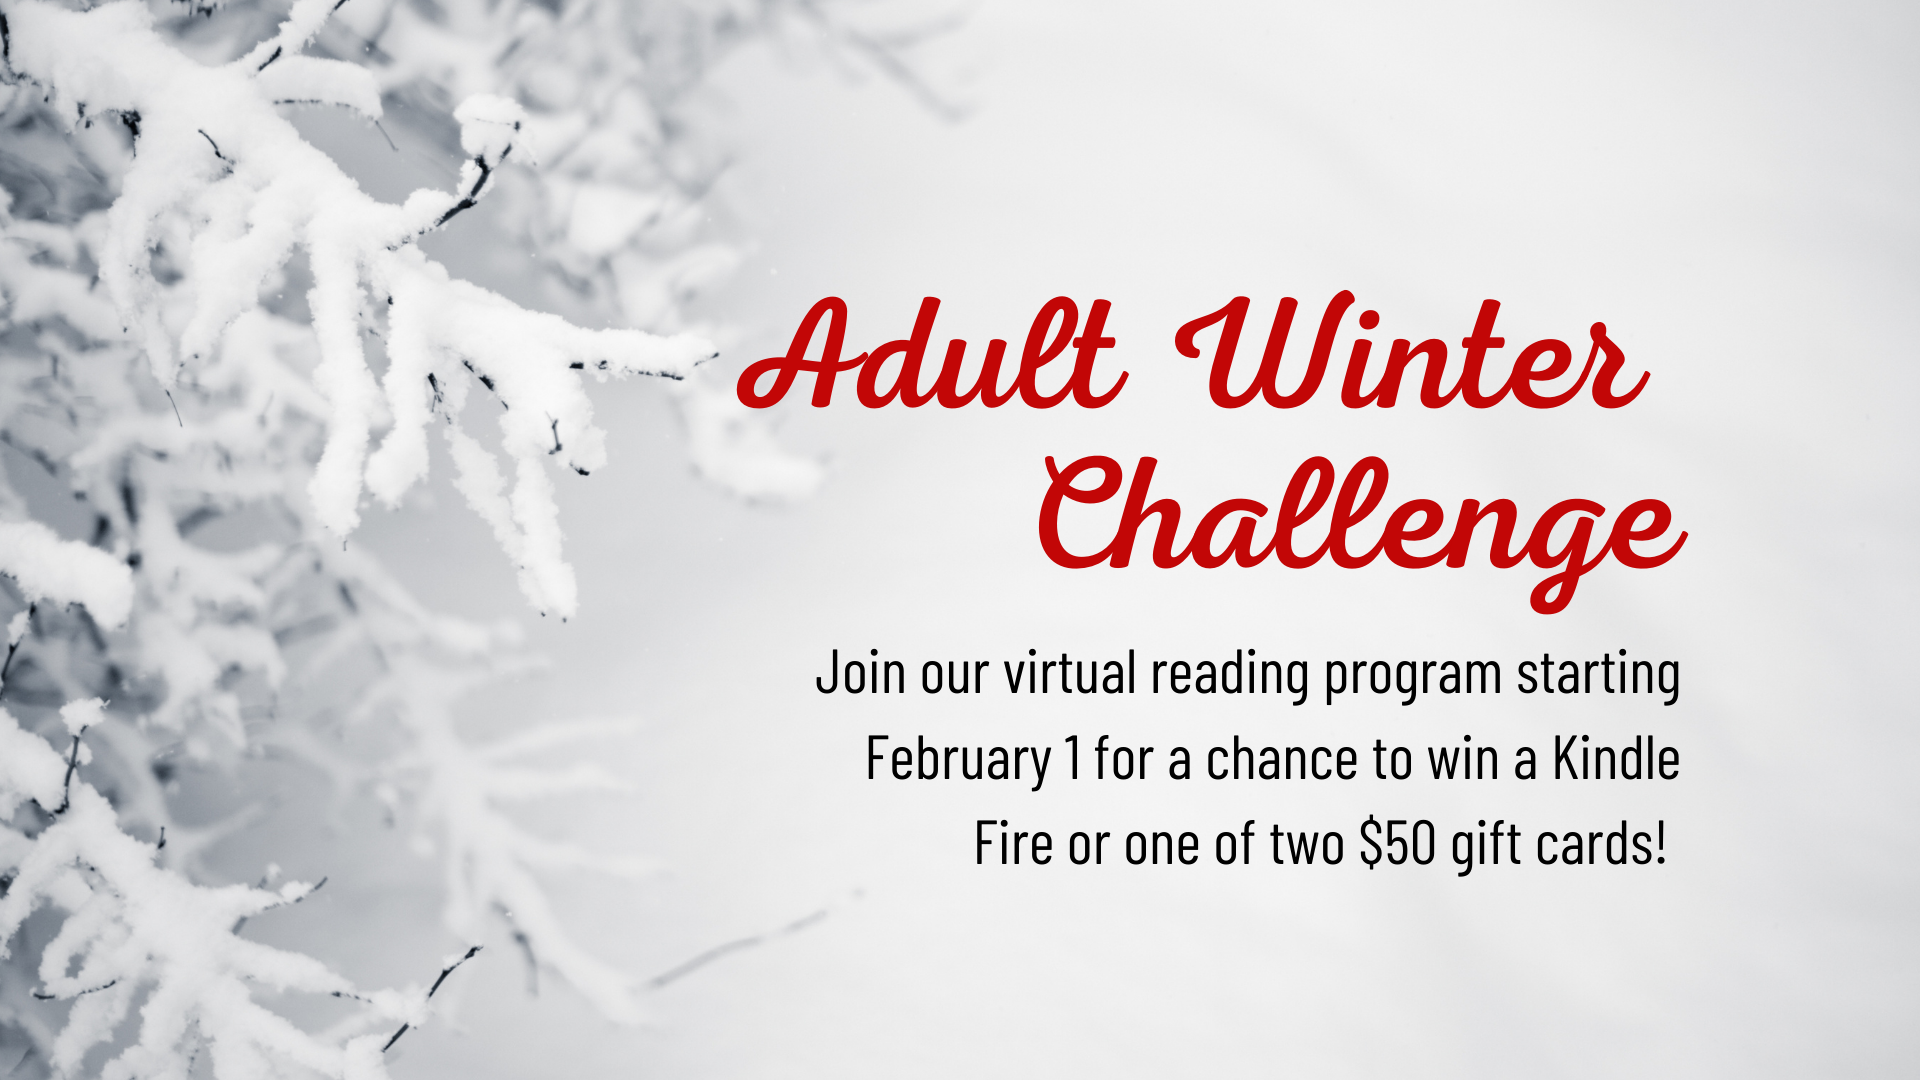 Adult Winter Reading Challenge Begins